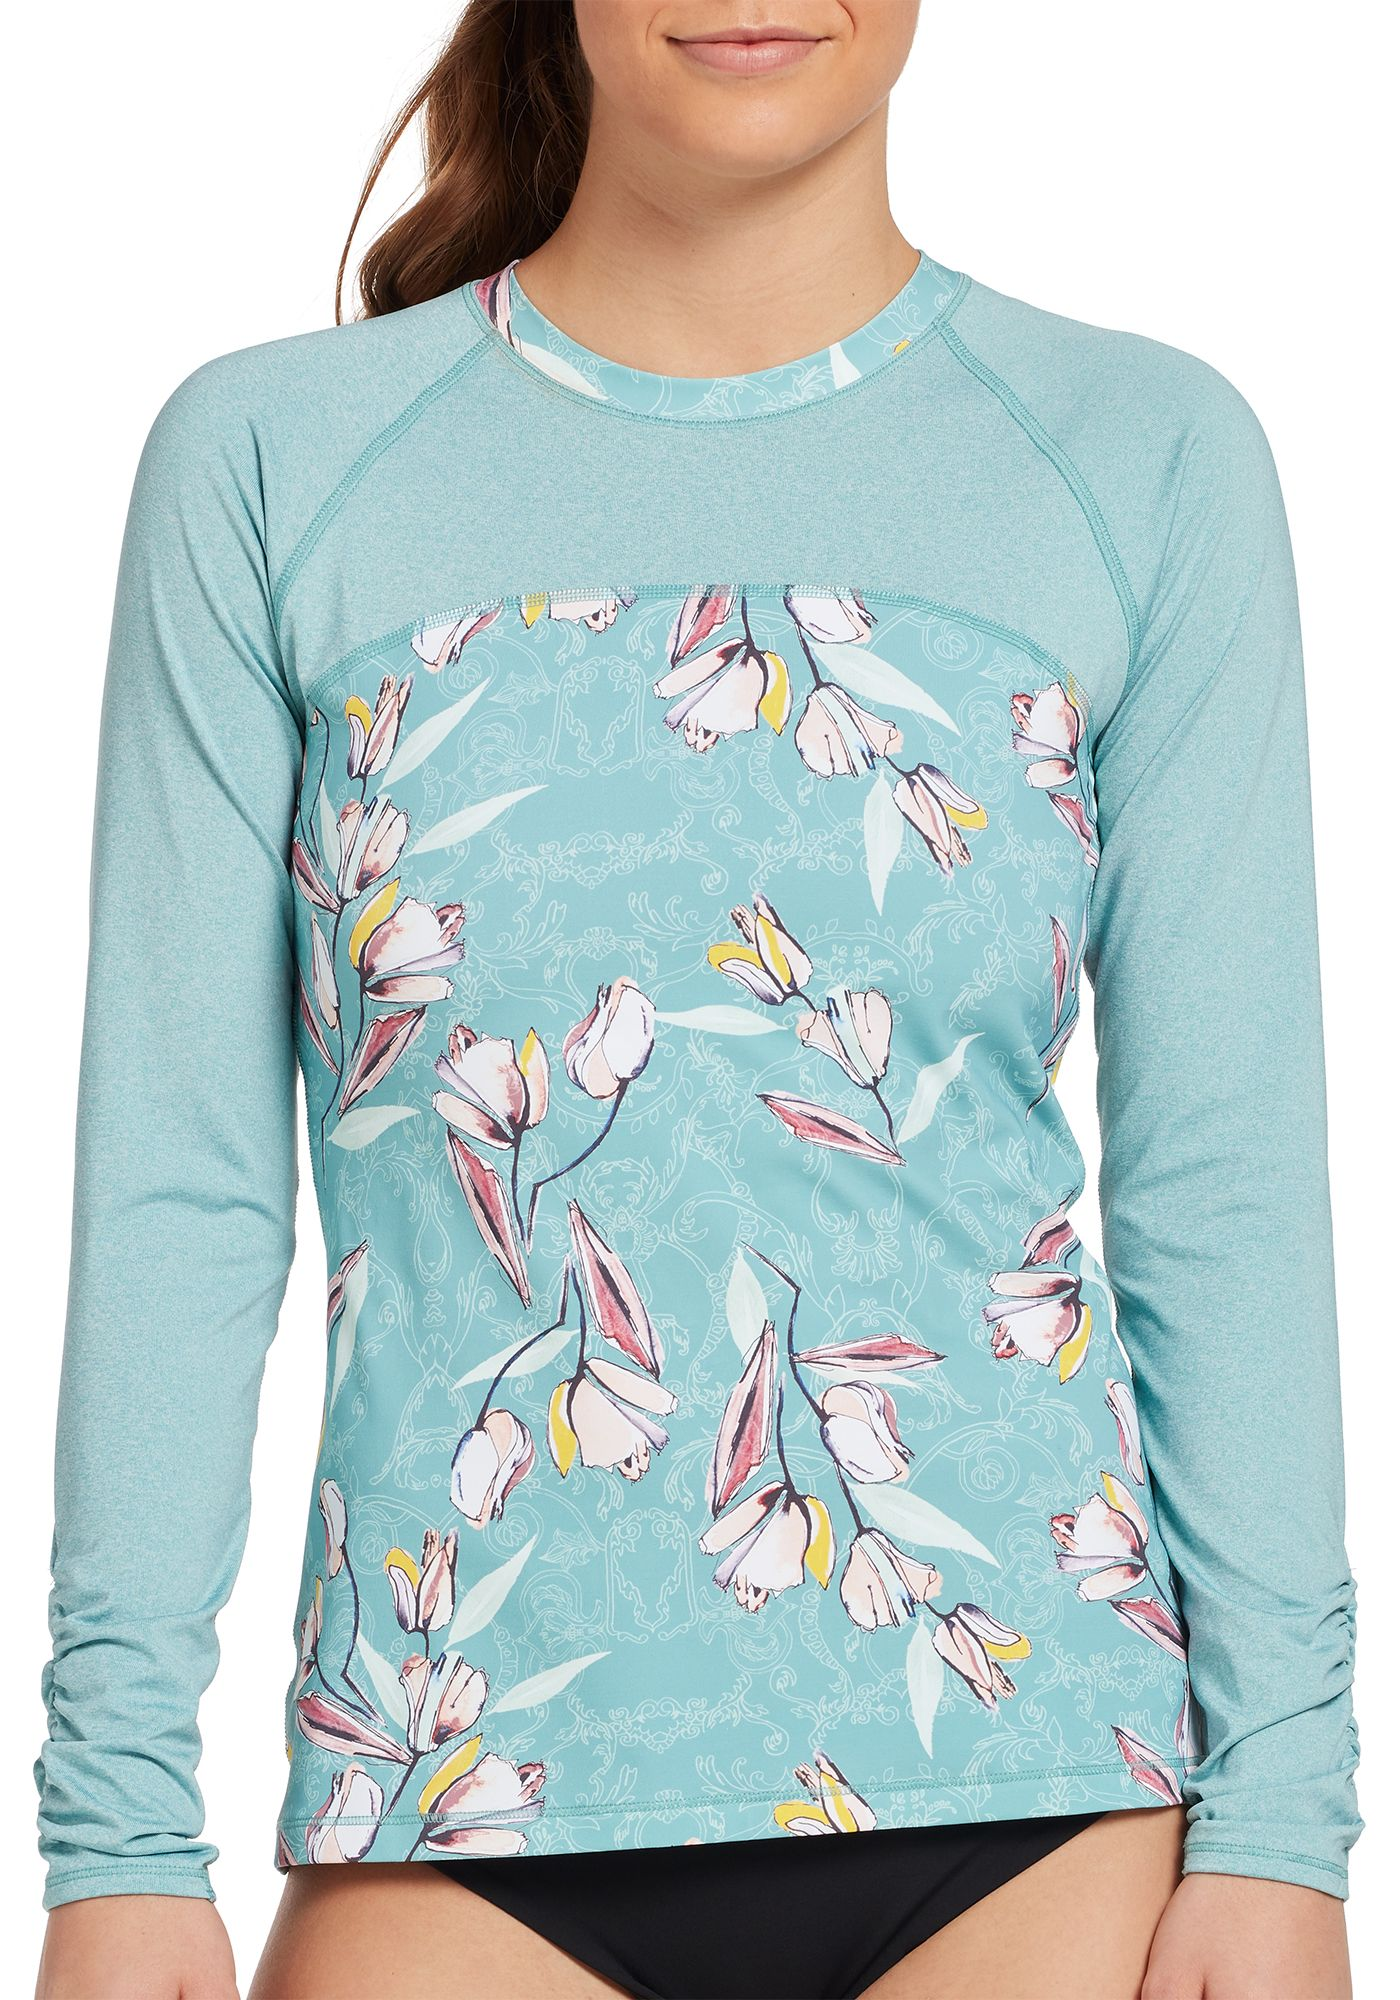 CALIA by Carrie Underwood Women's Long Sleeve Rash Guard